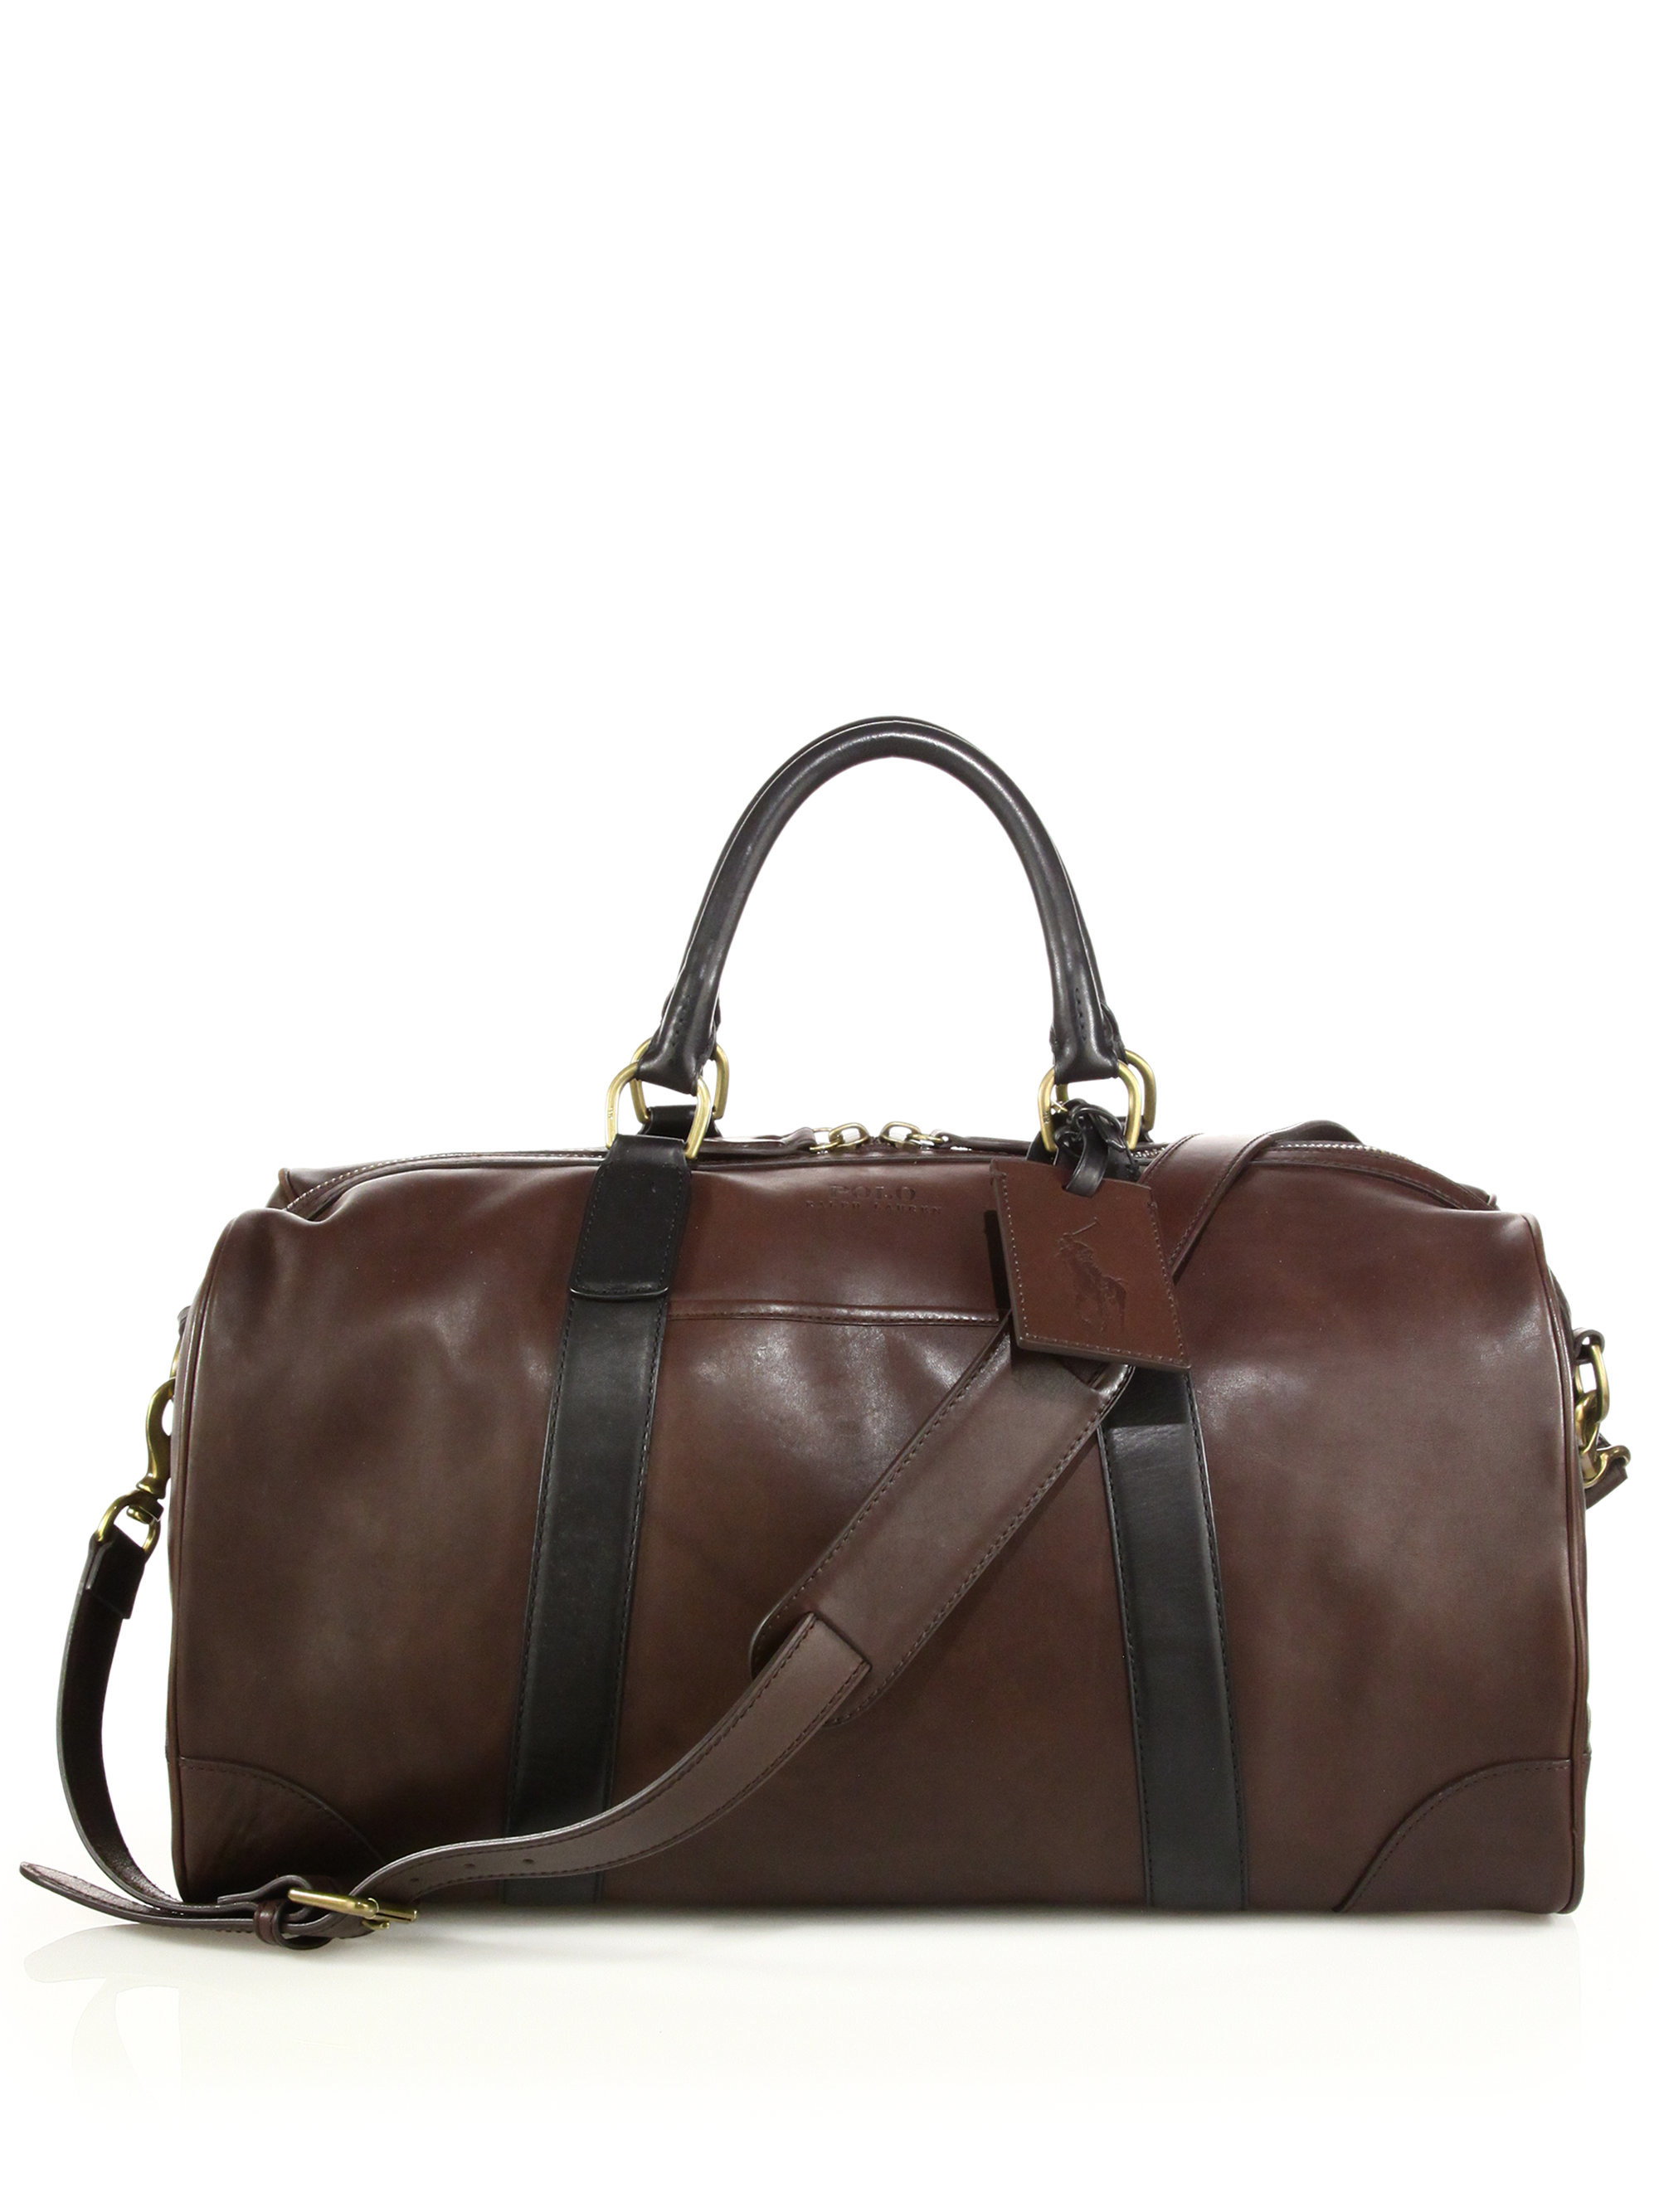 4792962ab8cb Lyst - Polo Ralph Lauren Two-toned Leather Duffel Bag in Brown for Men